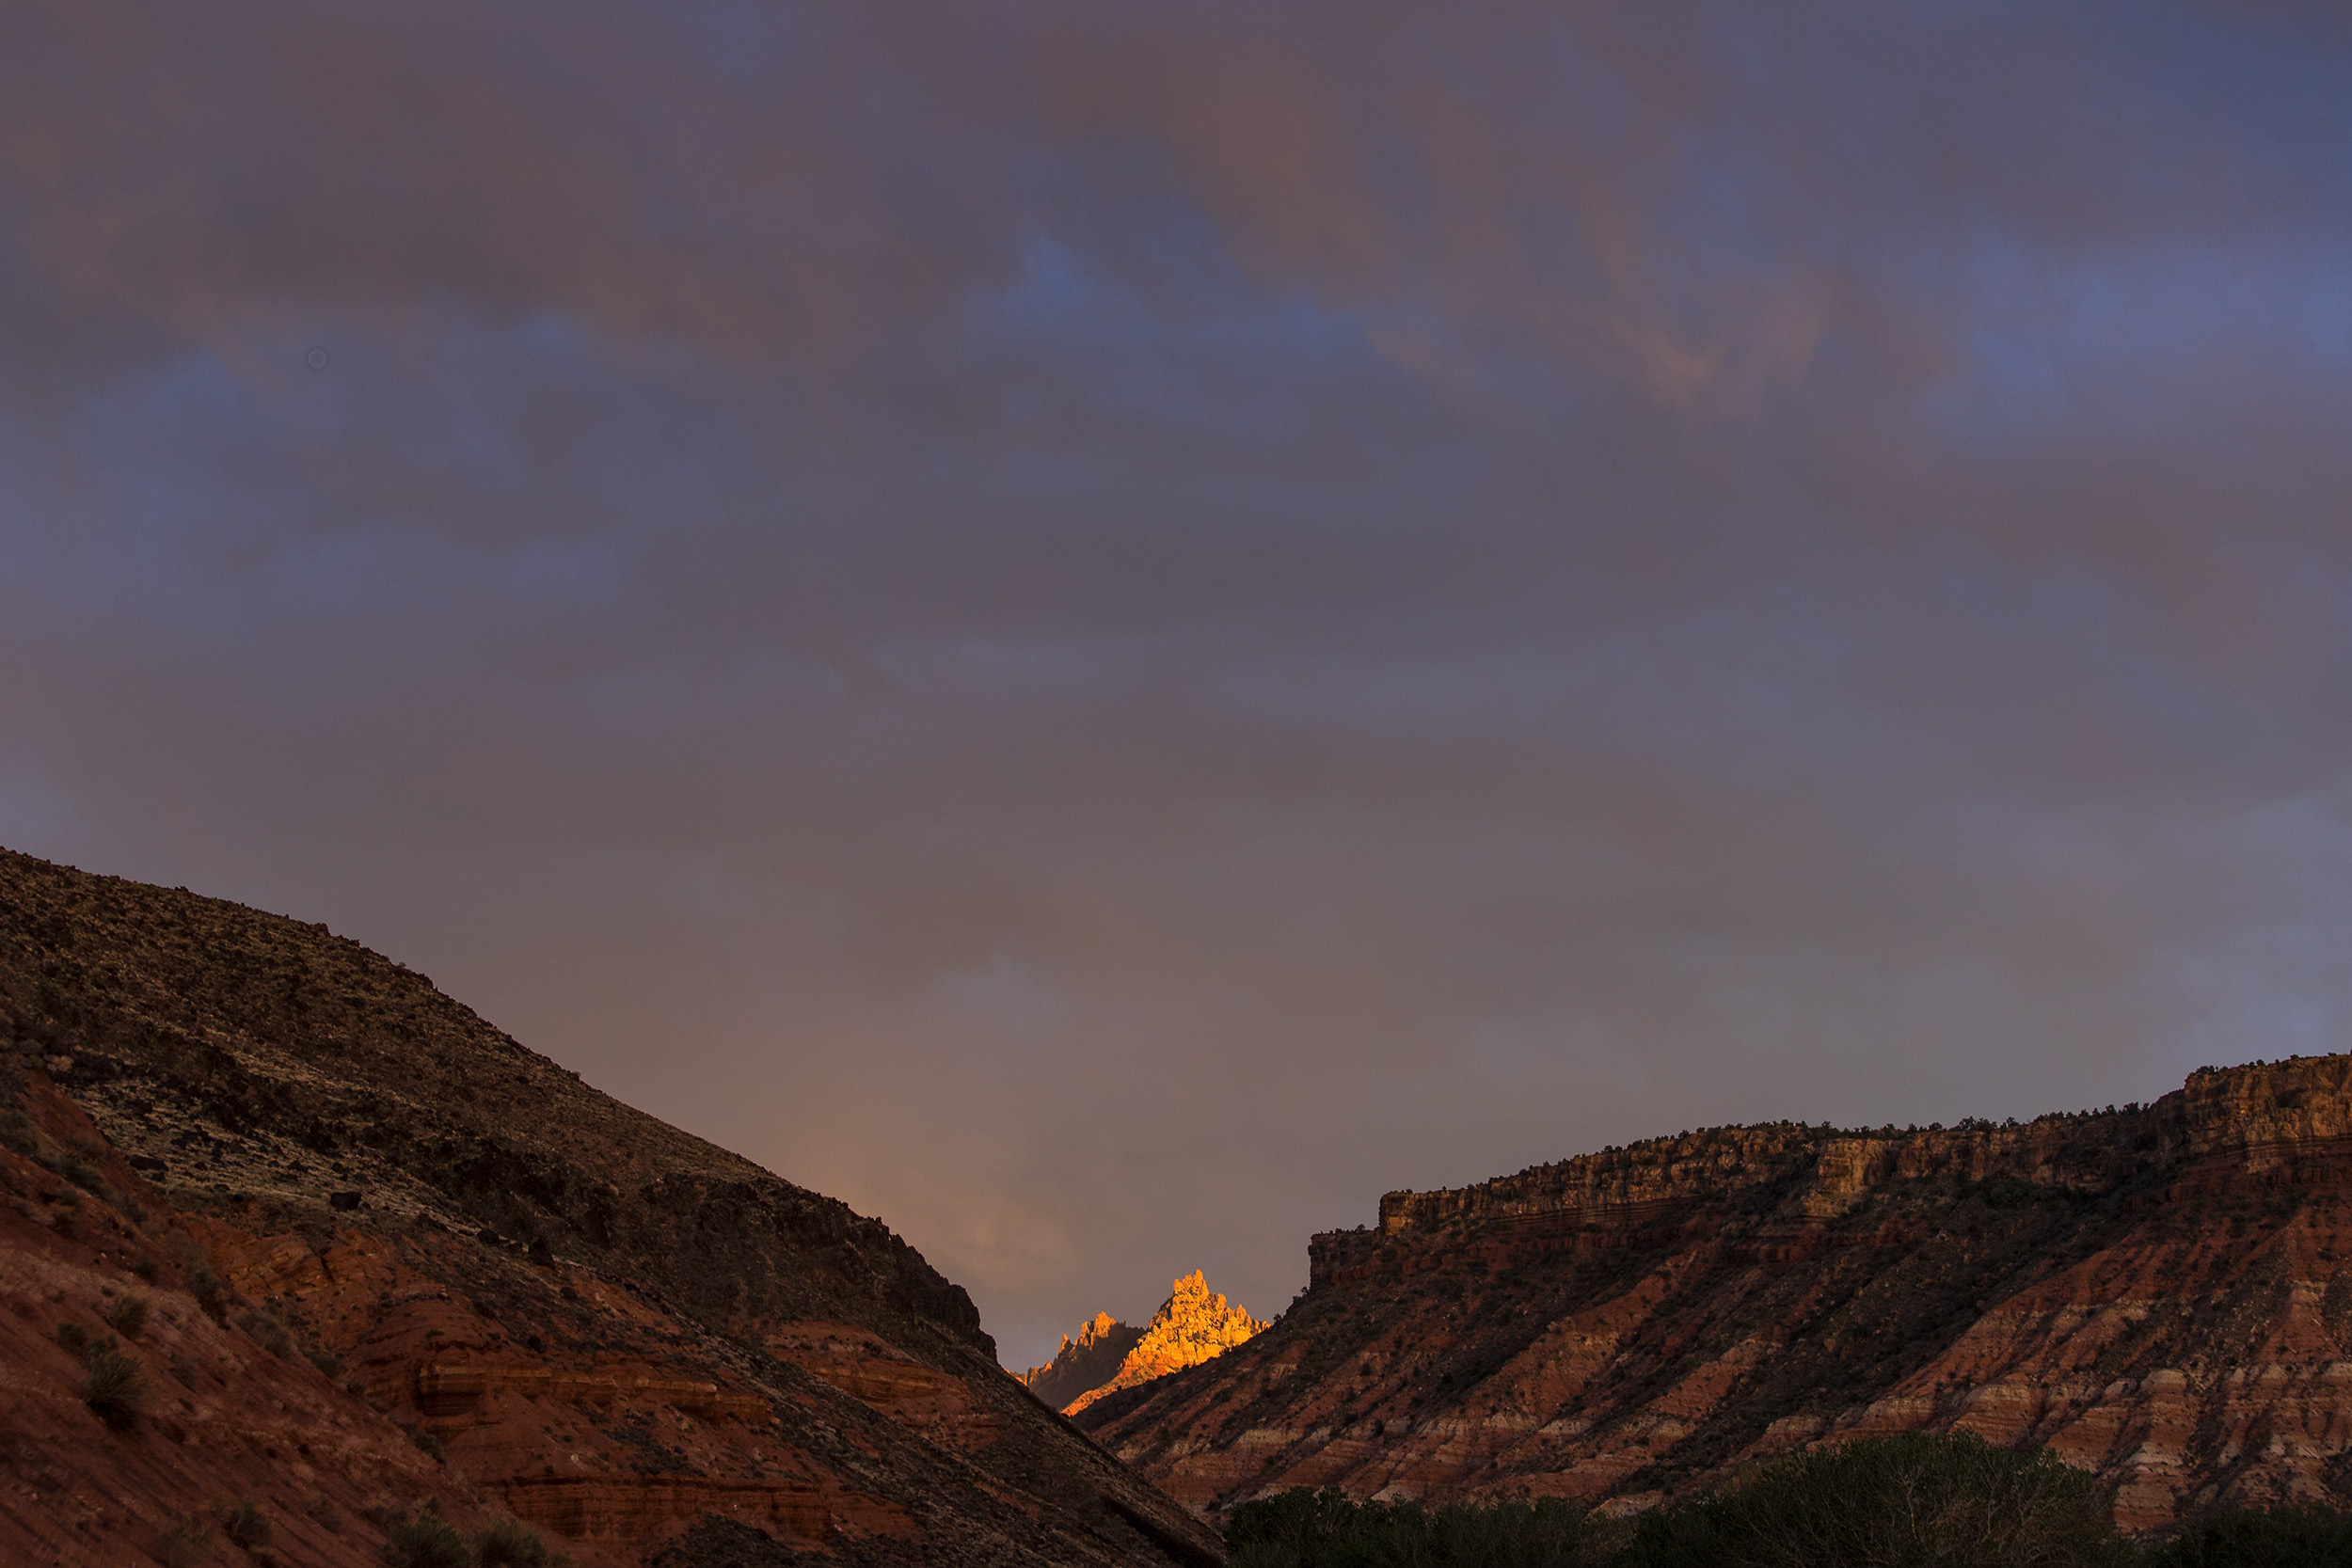 NATLPARKING_travel_rv_adventure_sunset_zionnationalpark_1241_WB